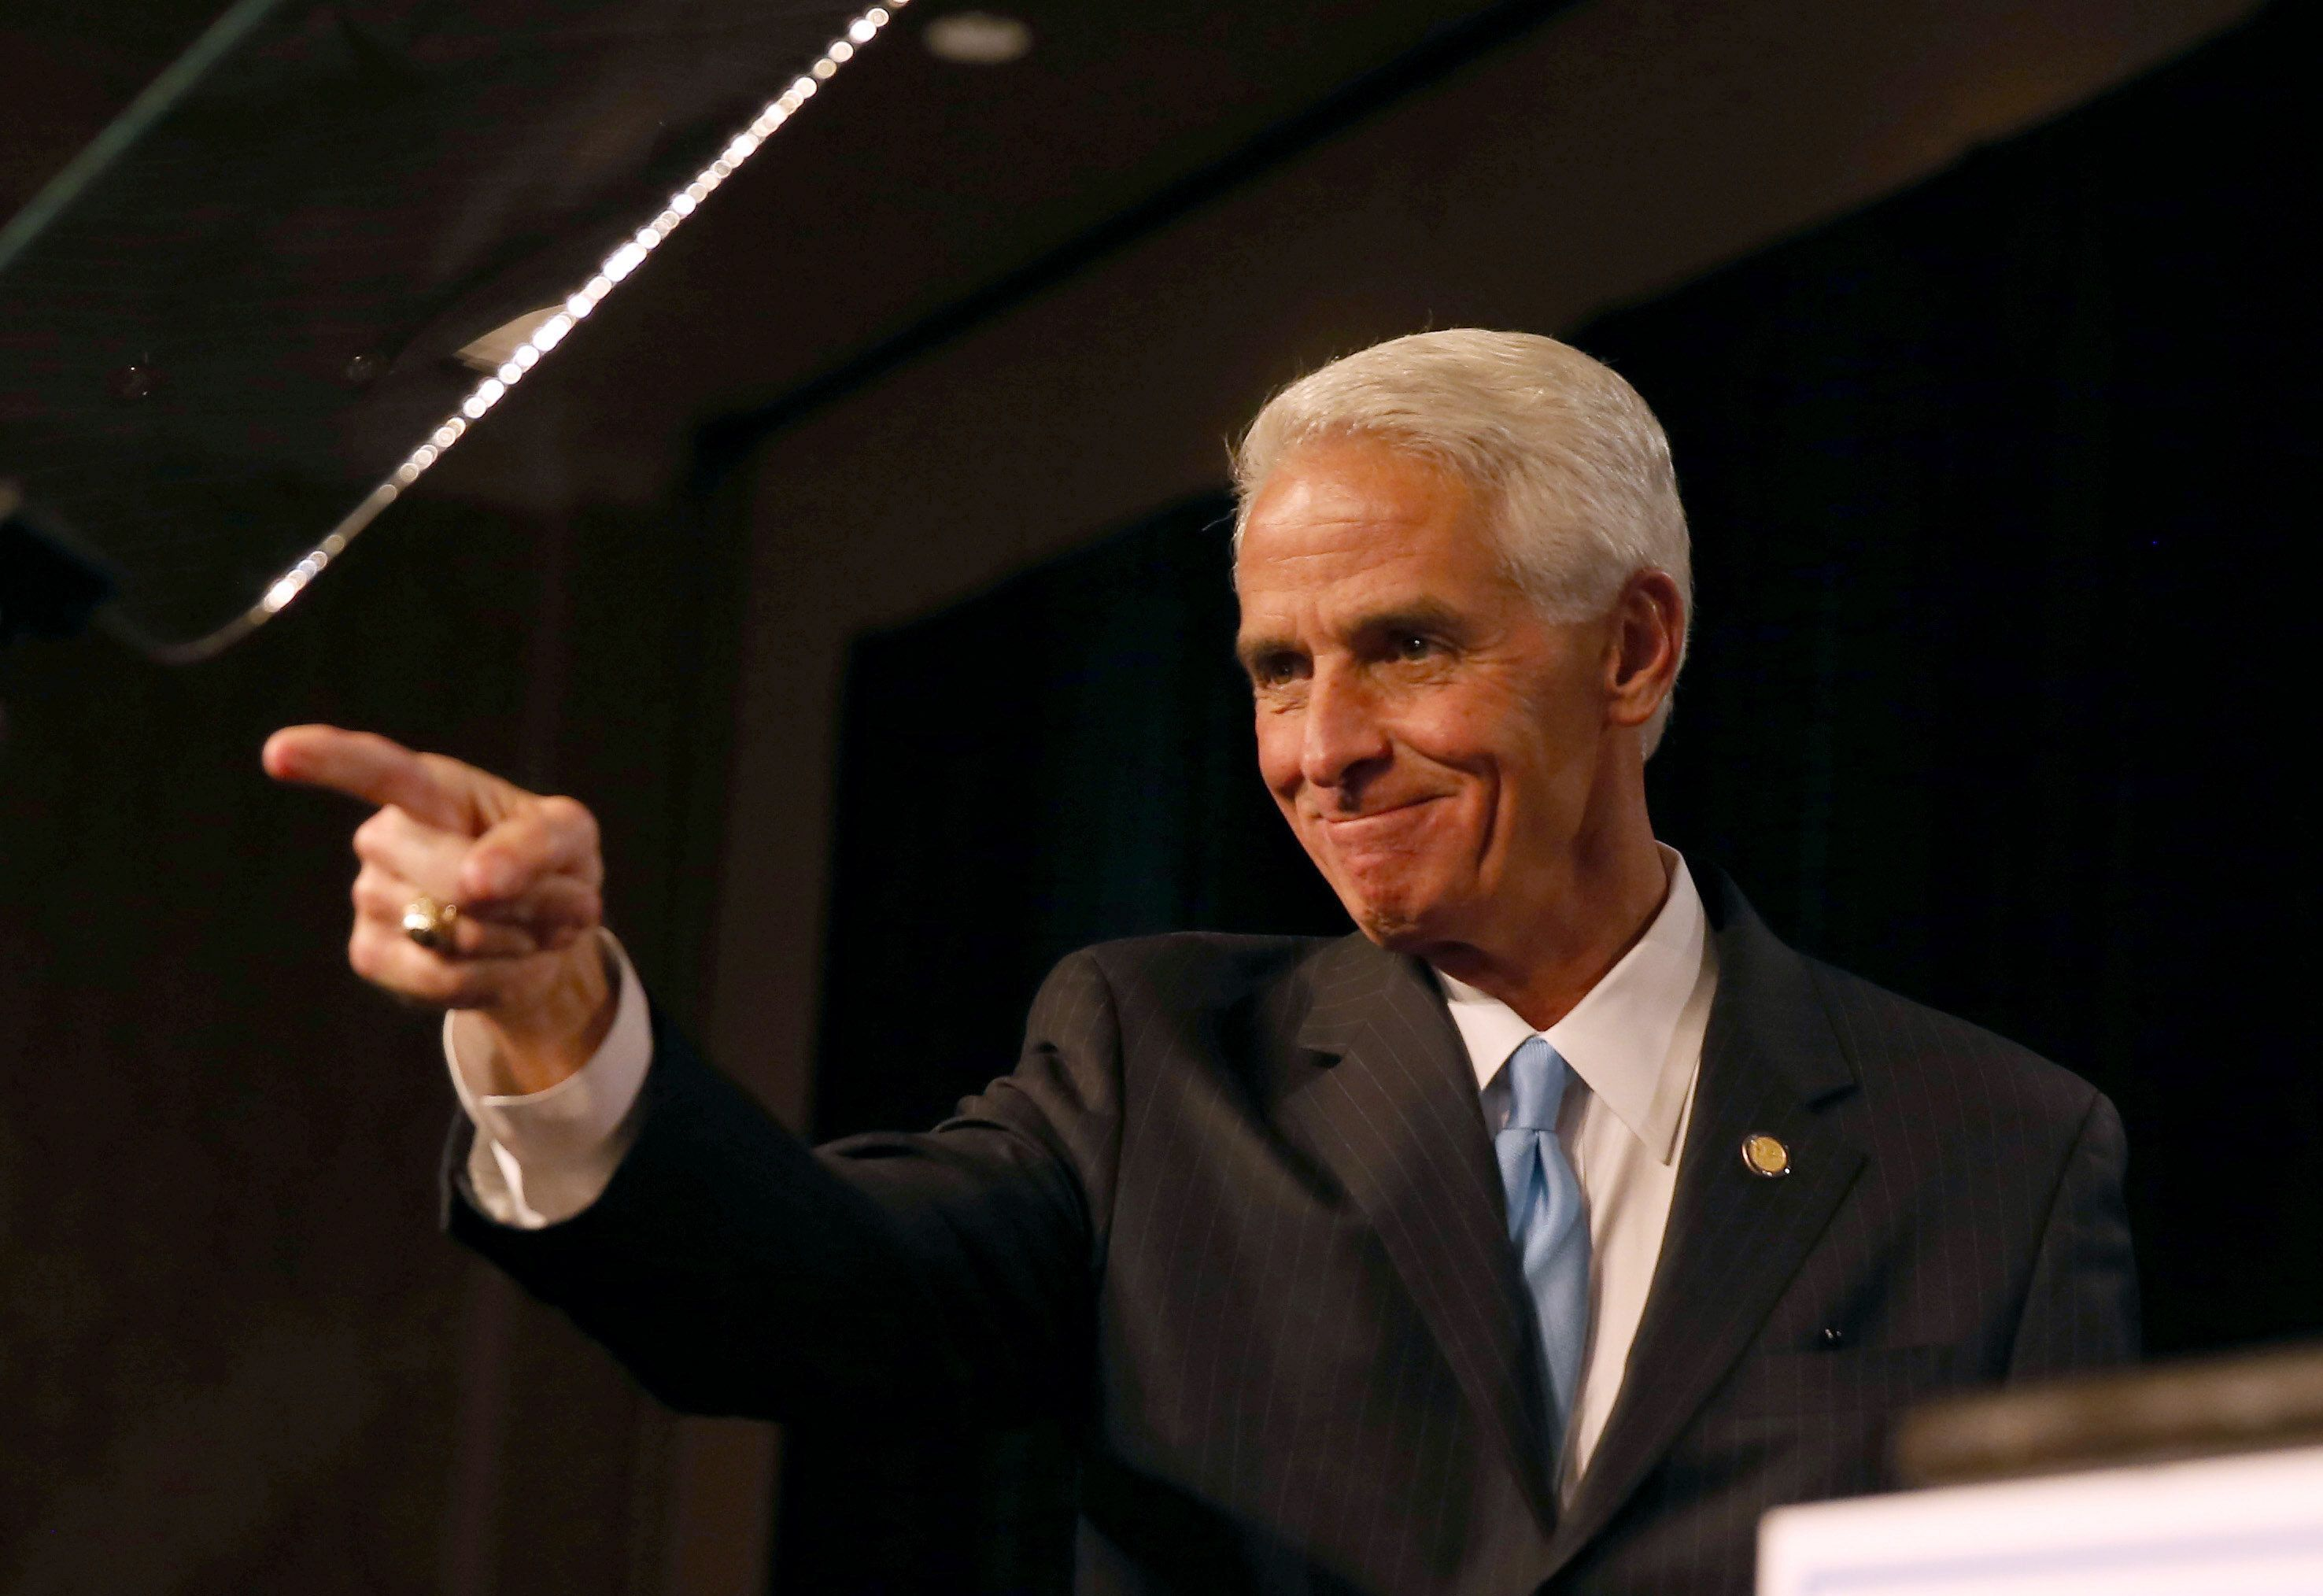 SAINT PETERSBURG, FL - NOVEMBER 04:  Former Florida Governor and now Democratic gubernatorial candidate Charlie Crist as he concedes defeat in the Vinoy hotel on November 4, 2014 in St. Petersburg, Florida. Crist lost to incumbent Republican Governor Rick Scott.  (Photo by Joe Raedle/Getty Images)